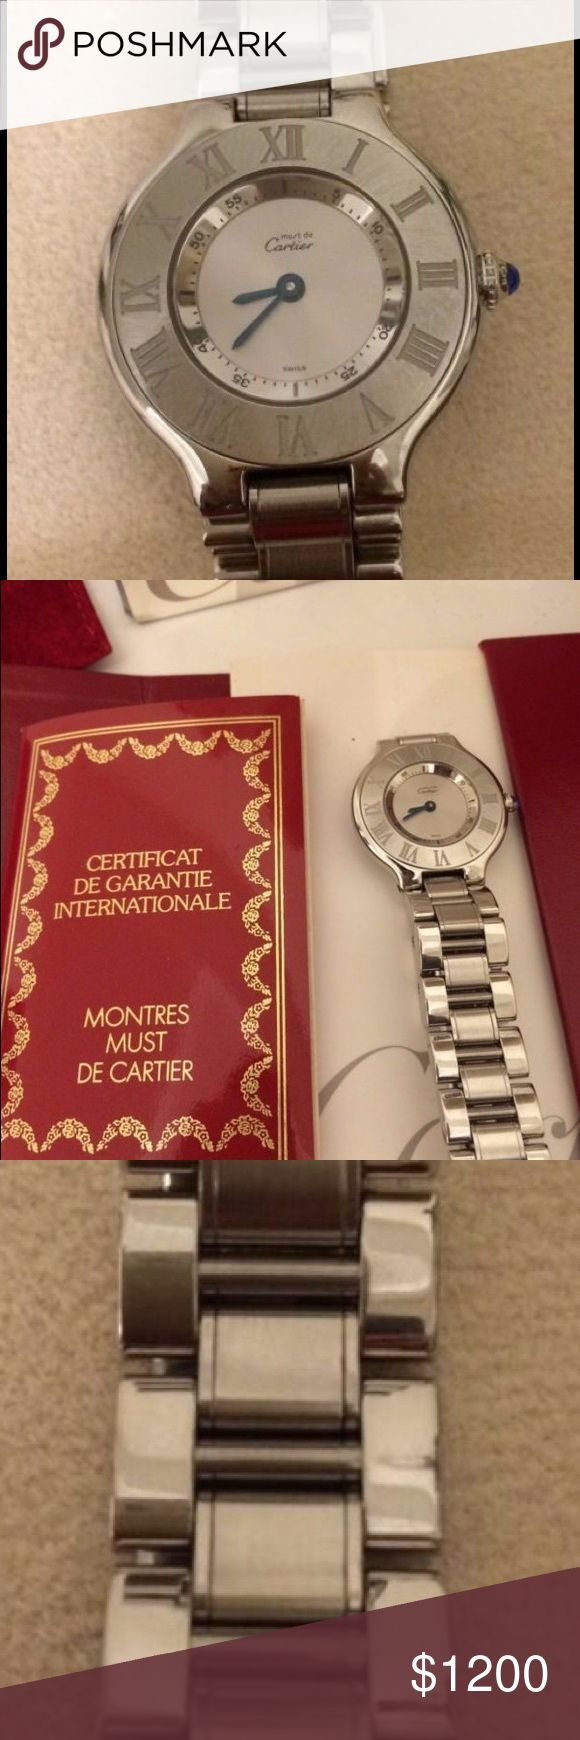 Must de 21 Cartier Stainless steel watch Beautiful Cartier watch, with cleaner, extra Cartier suede pouch, all original papers and box. Cartier Accessories Watches